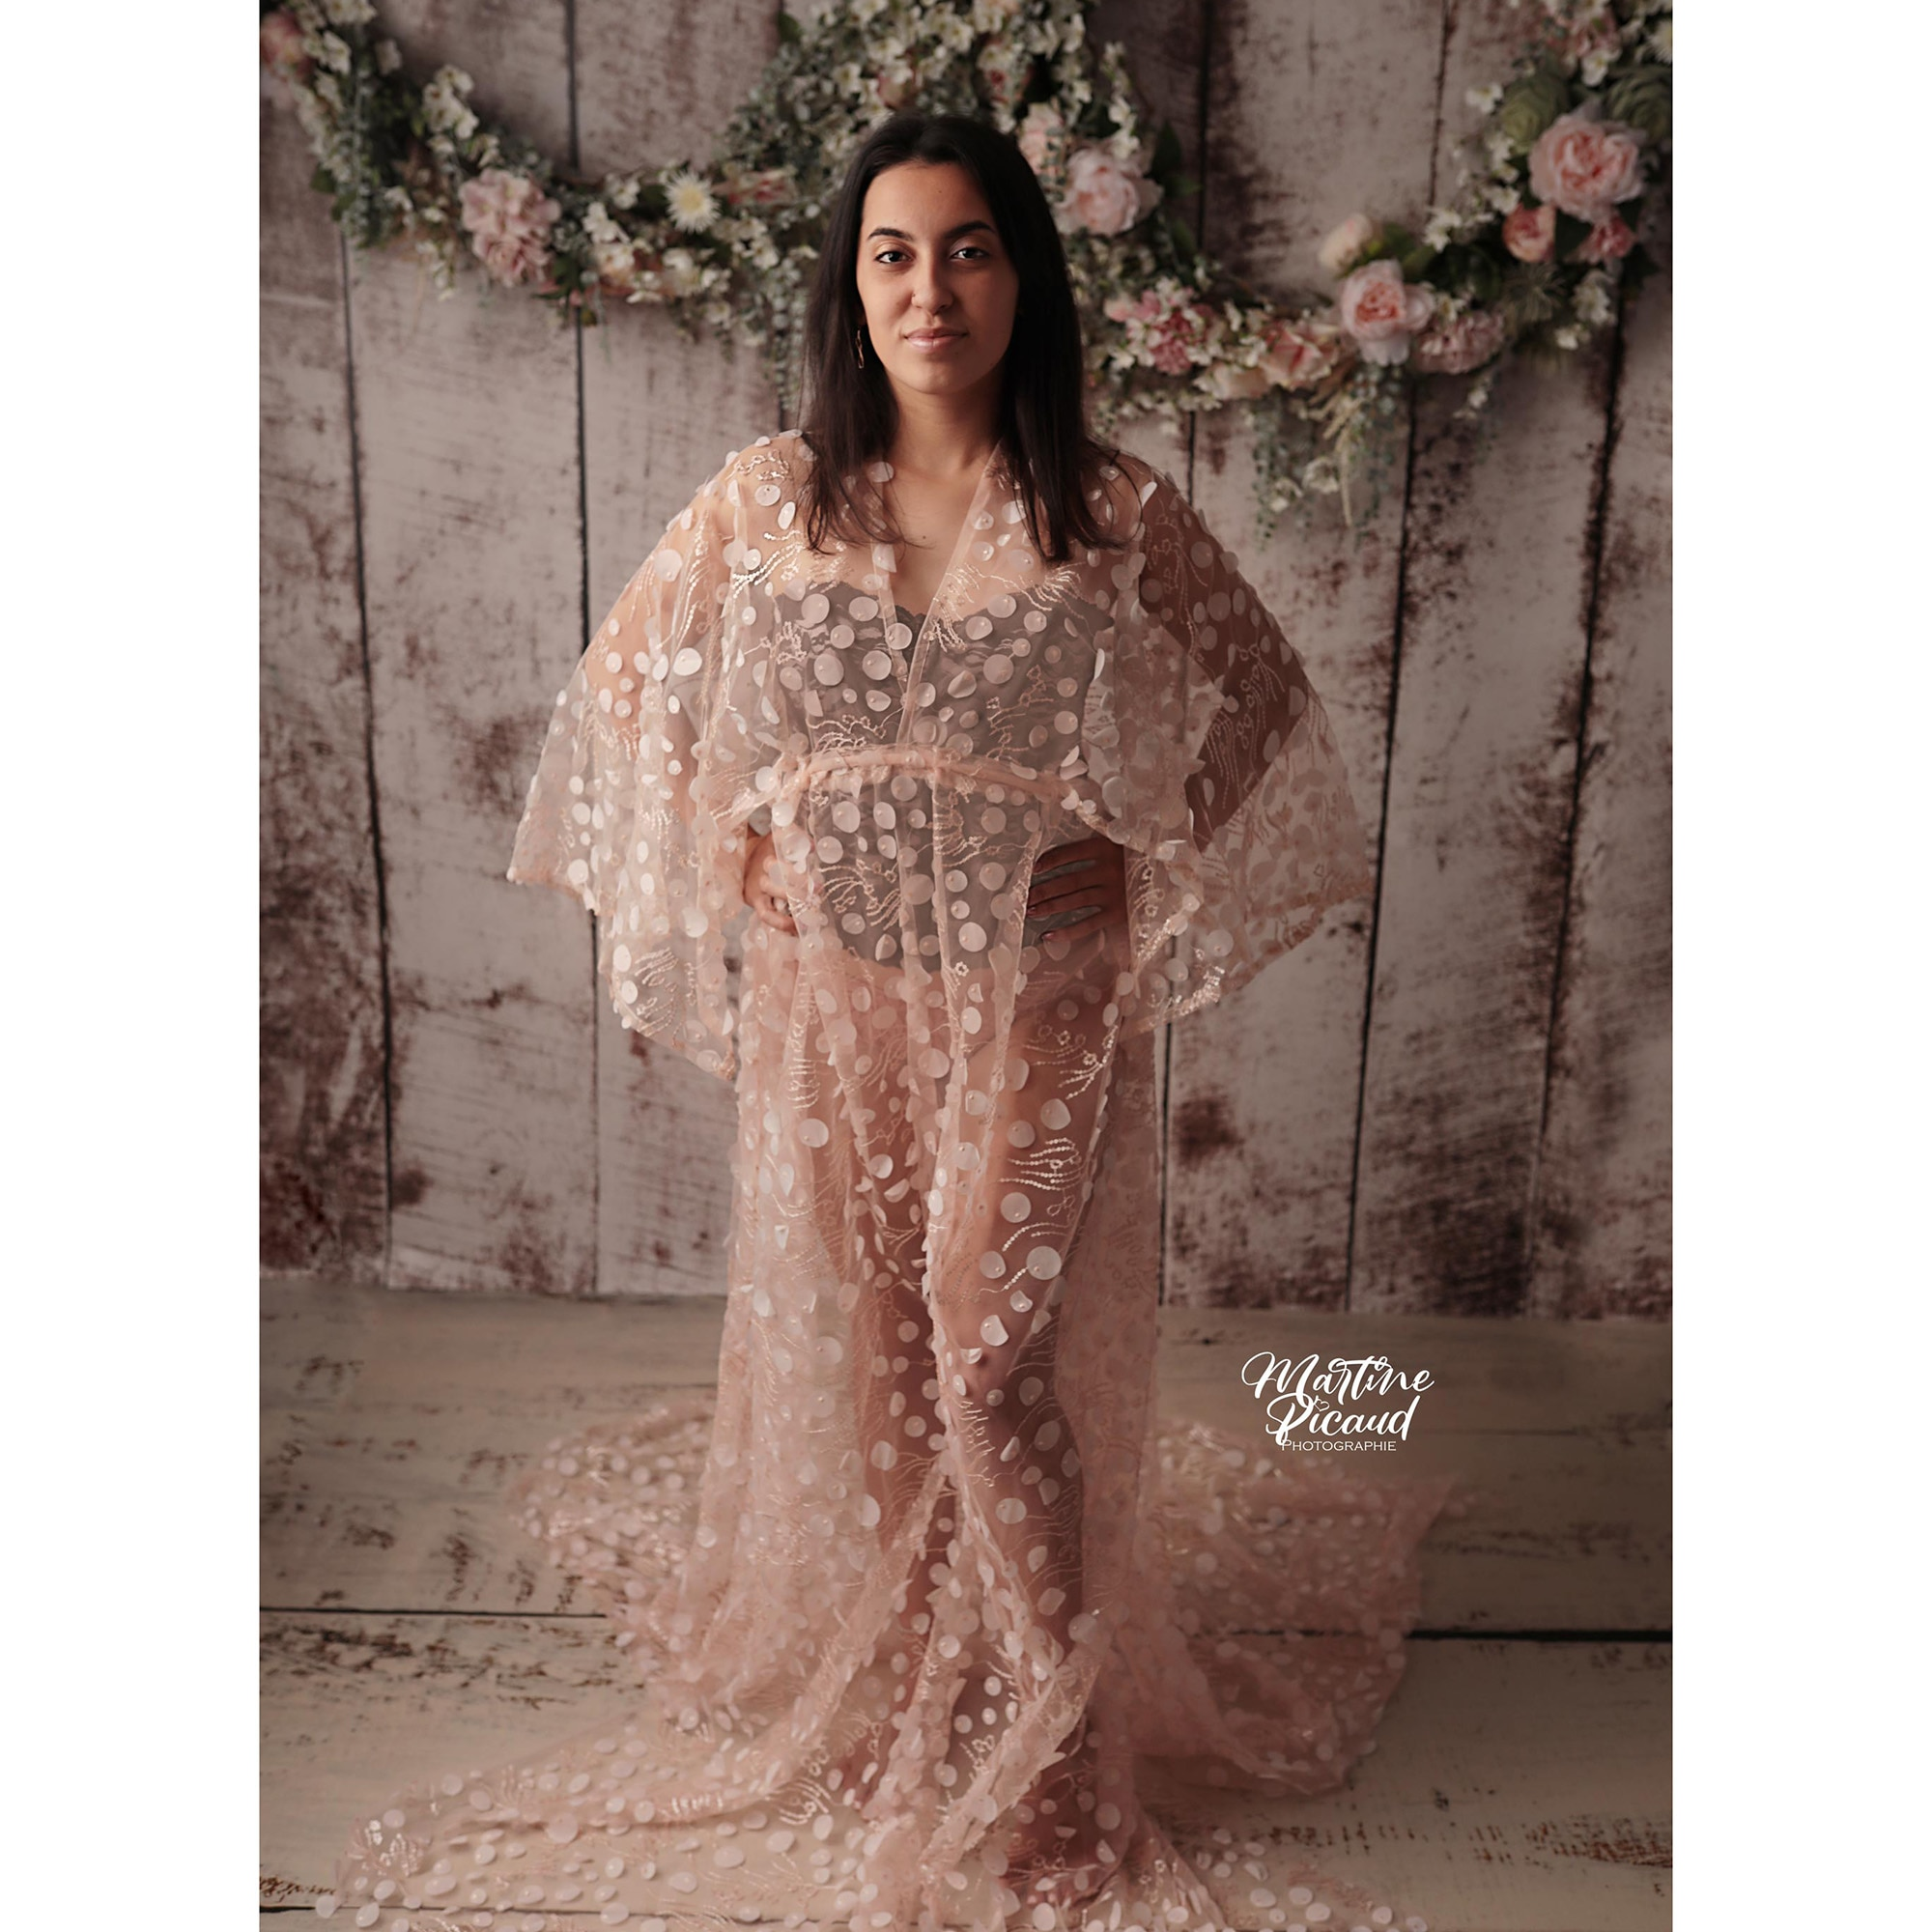 Boho Tulle Photography Sparkly Dress Maternity Robe Pregnant Kaftan Photo Shoot Baby Shower Evening Party Prom Women Couture enlarge